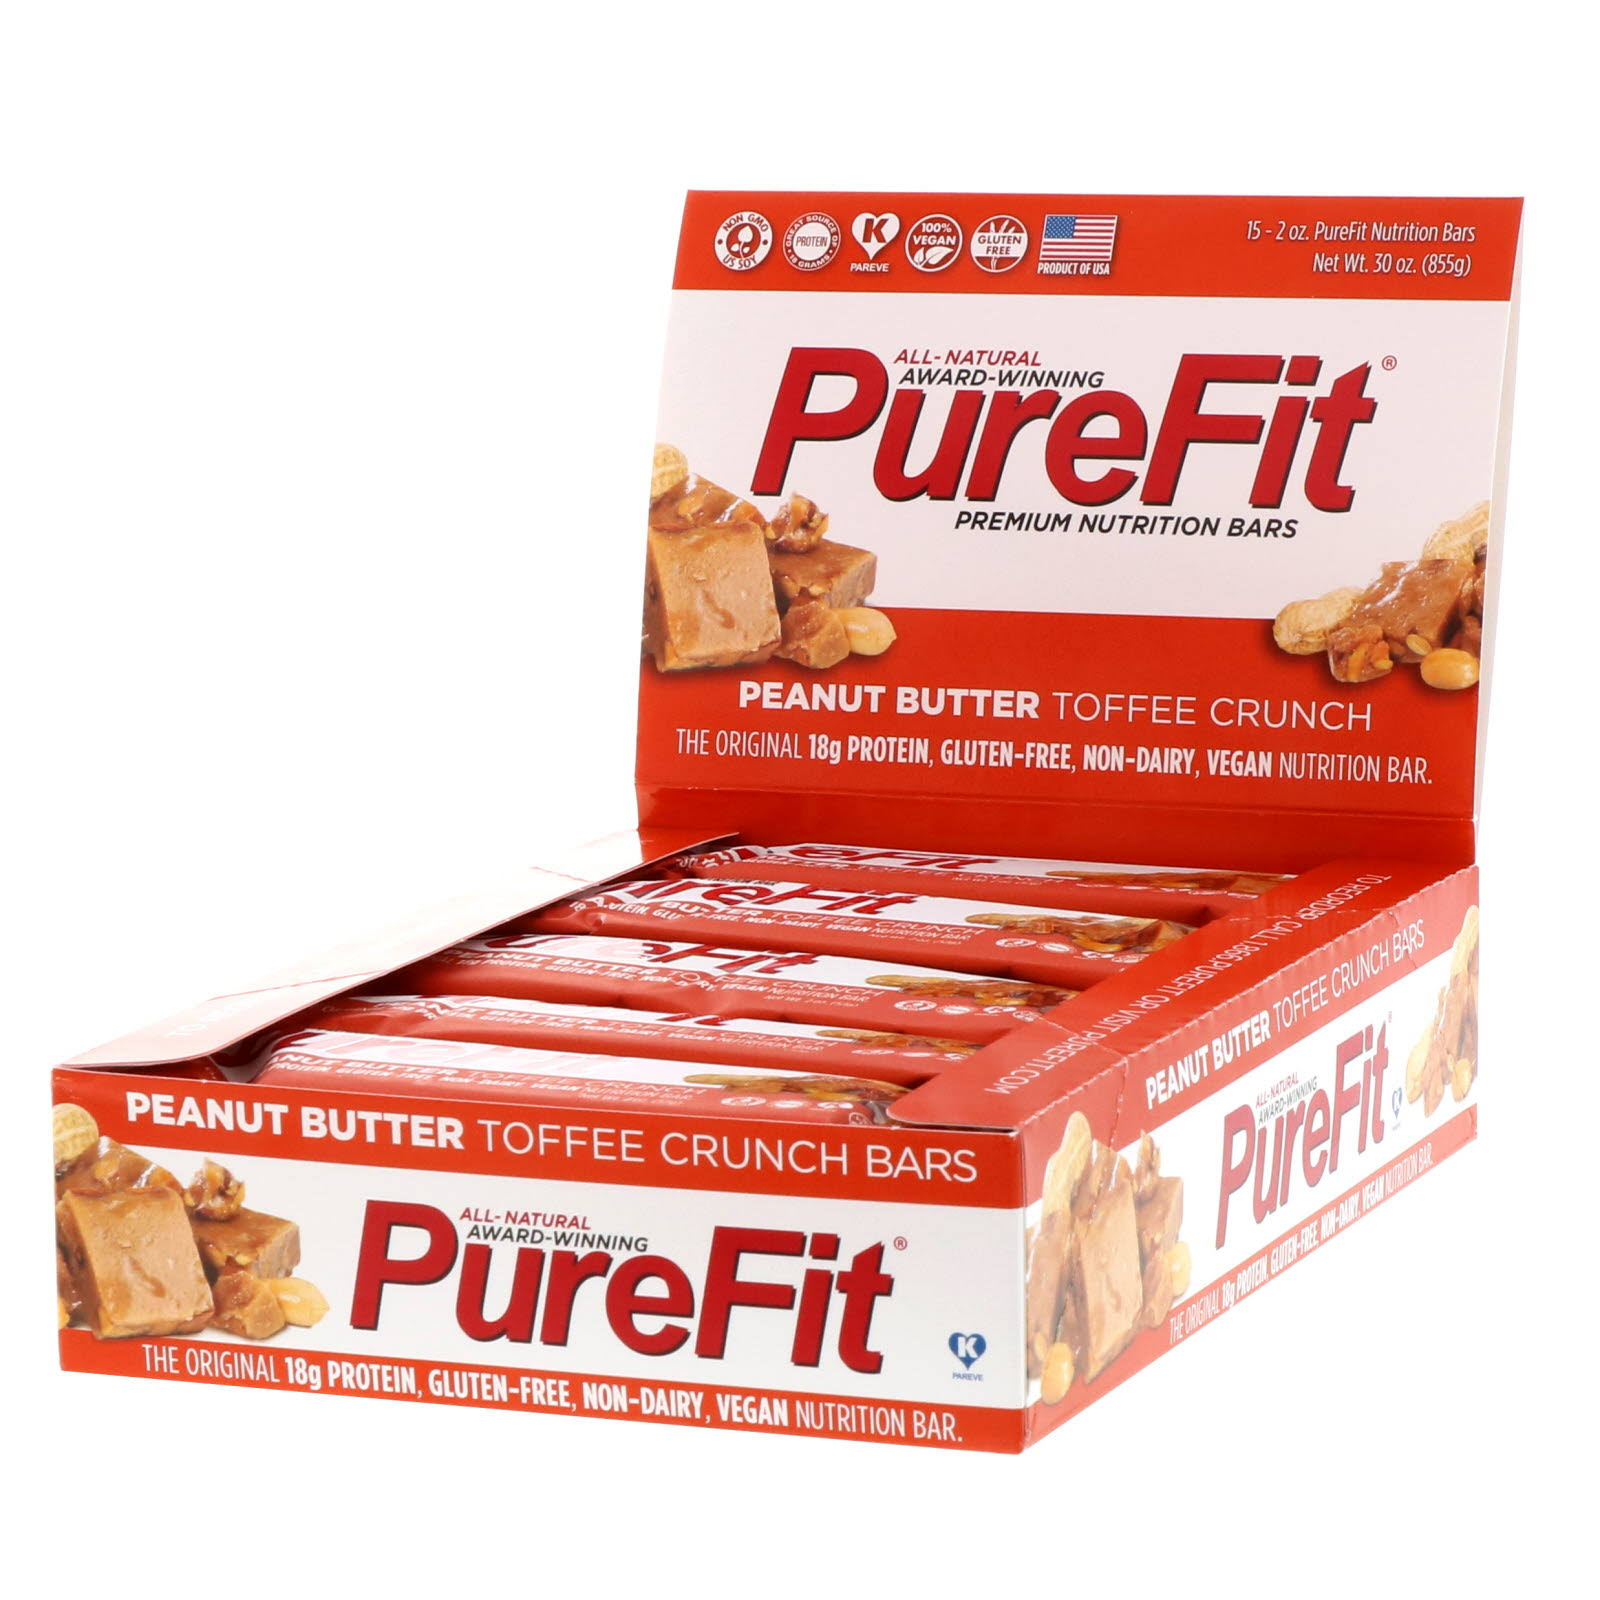 PureFit Gluten-Free Nutrition Bar - Peanut Butter Toffee Crunch, 2oz, 15pcs